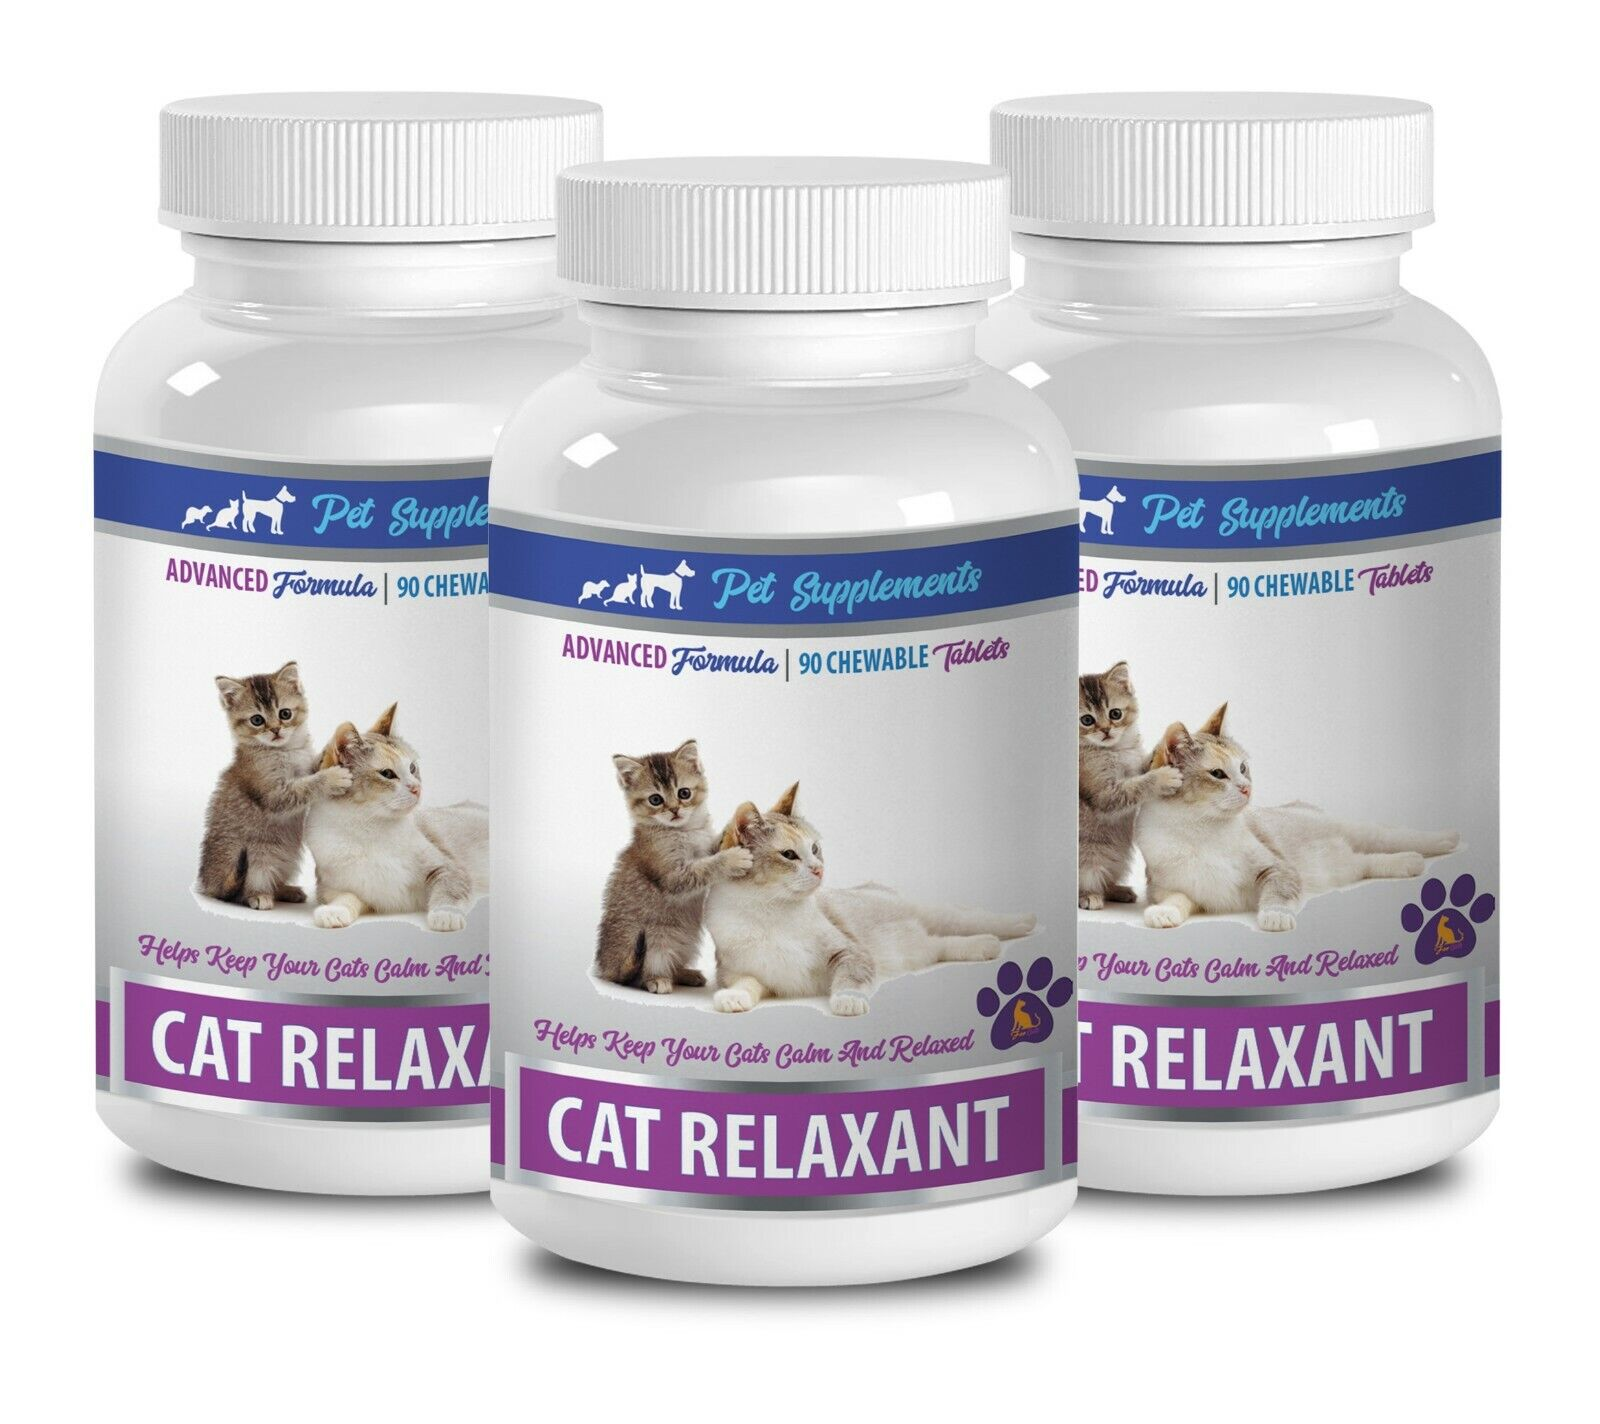 Cat aggression products - CAT RELAXANT - calmer for cats 3B